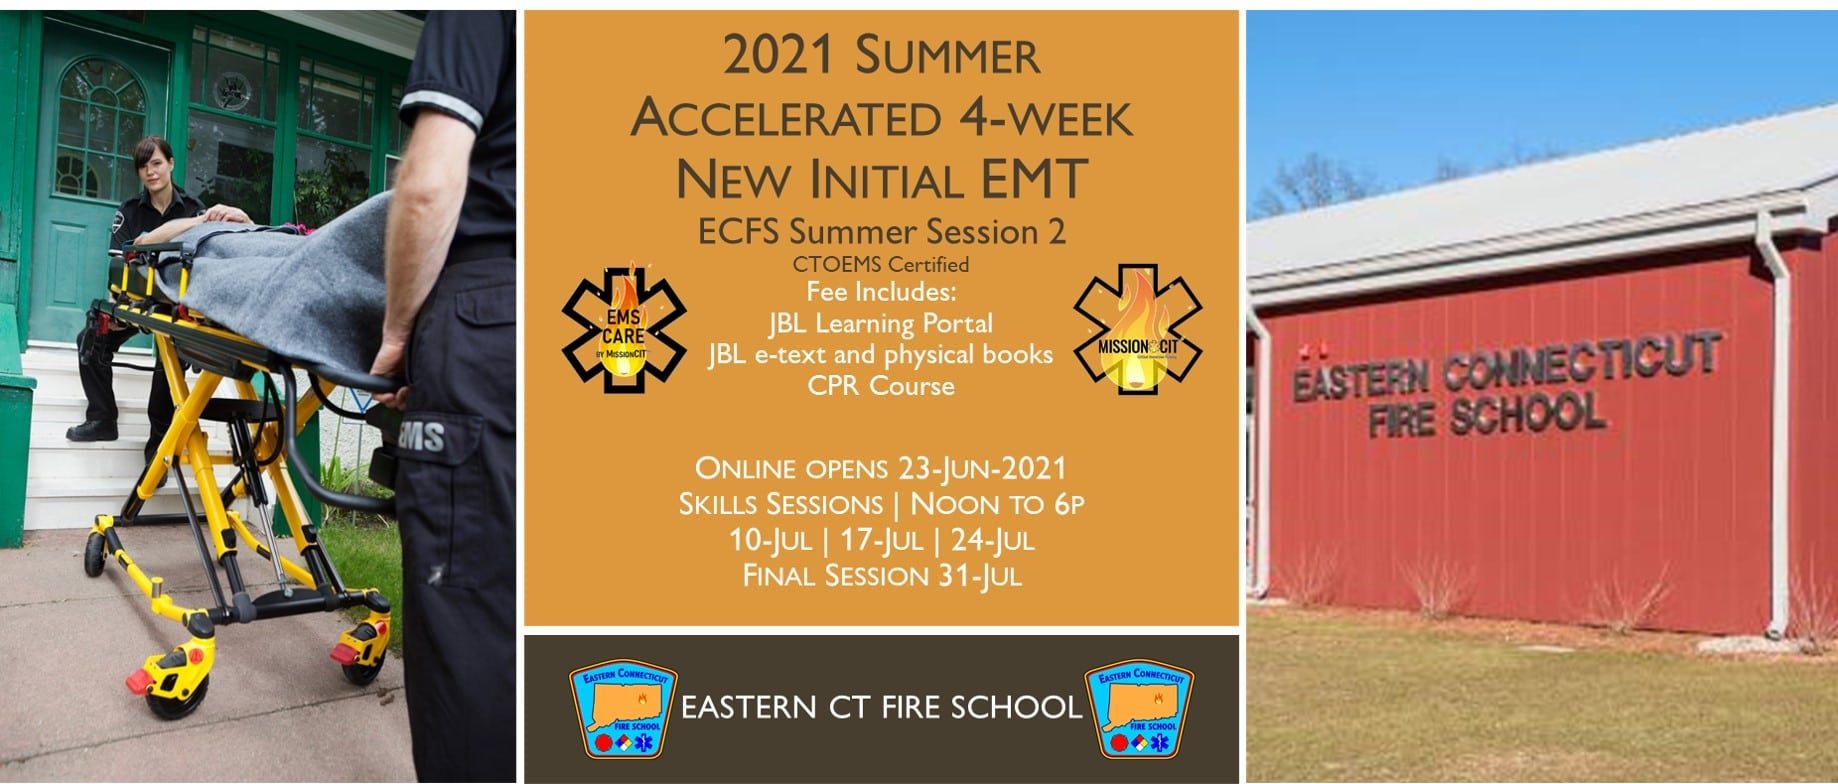 2021 Summer EMT Accelerated Initial Course | ECFS Session 2